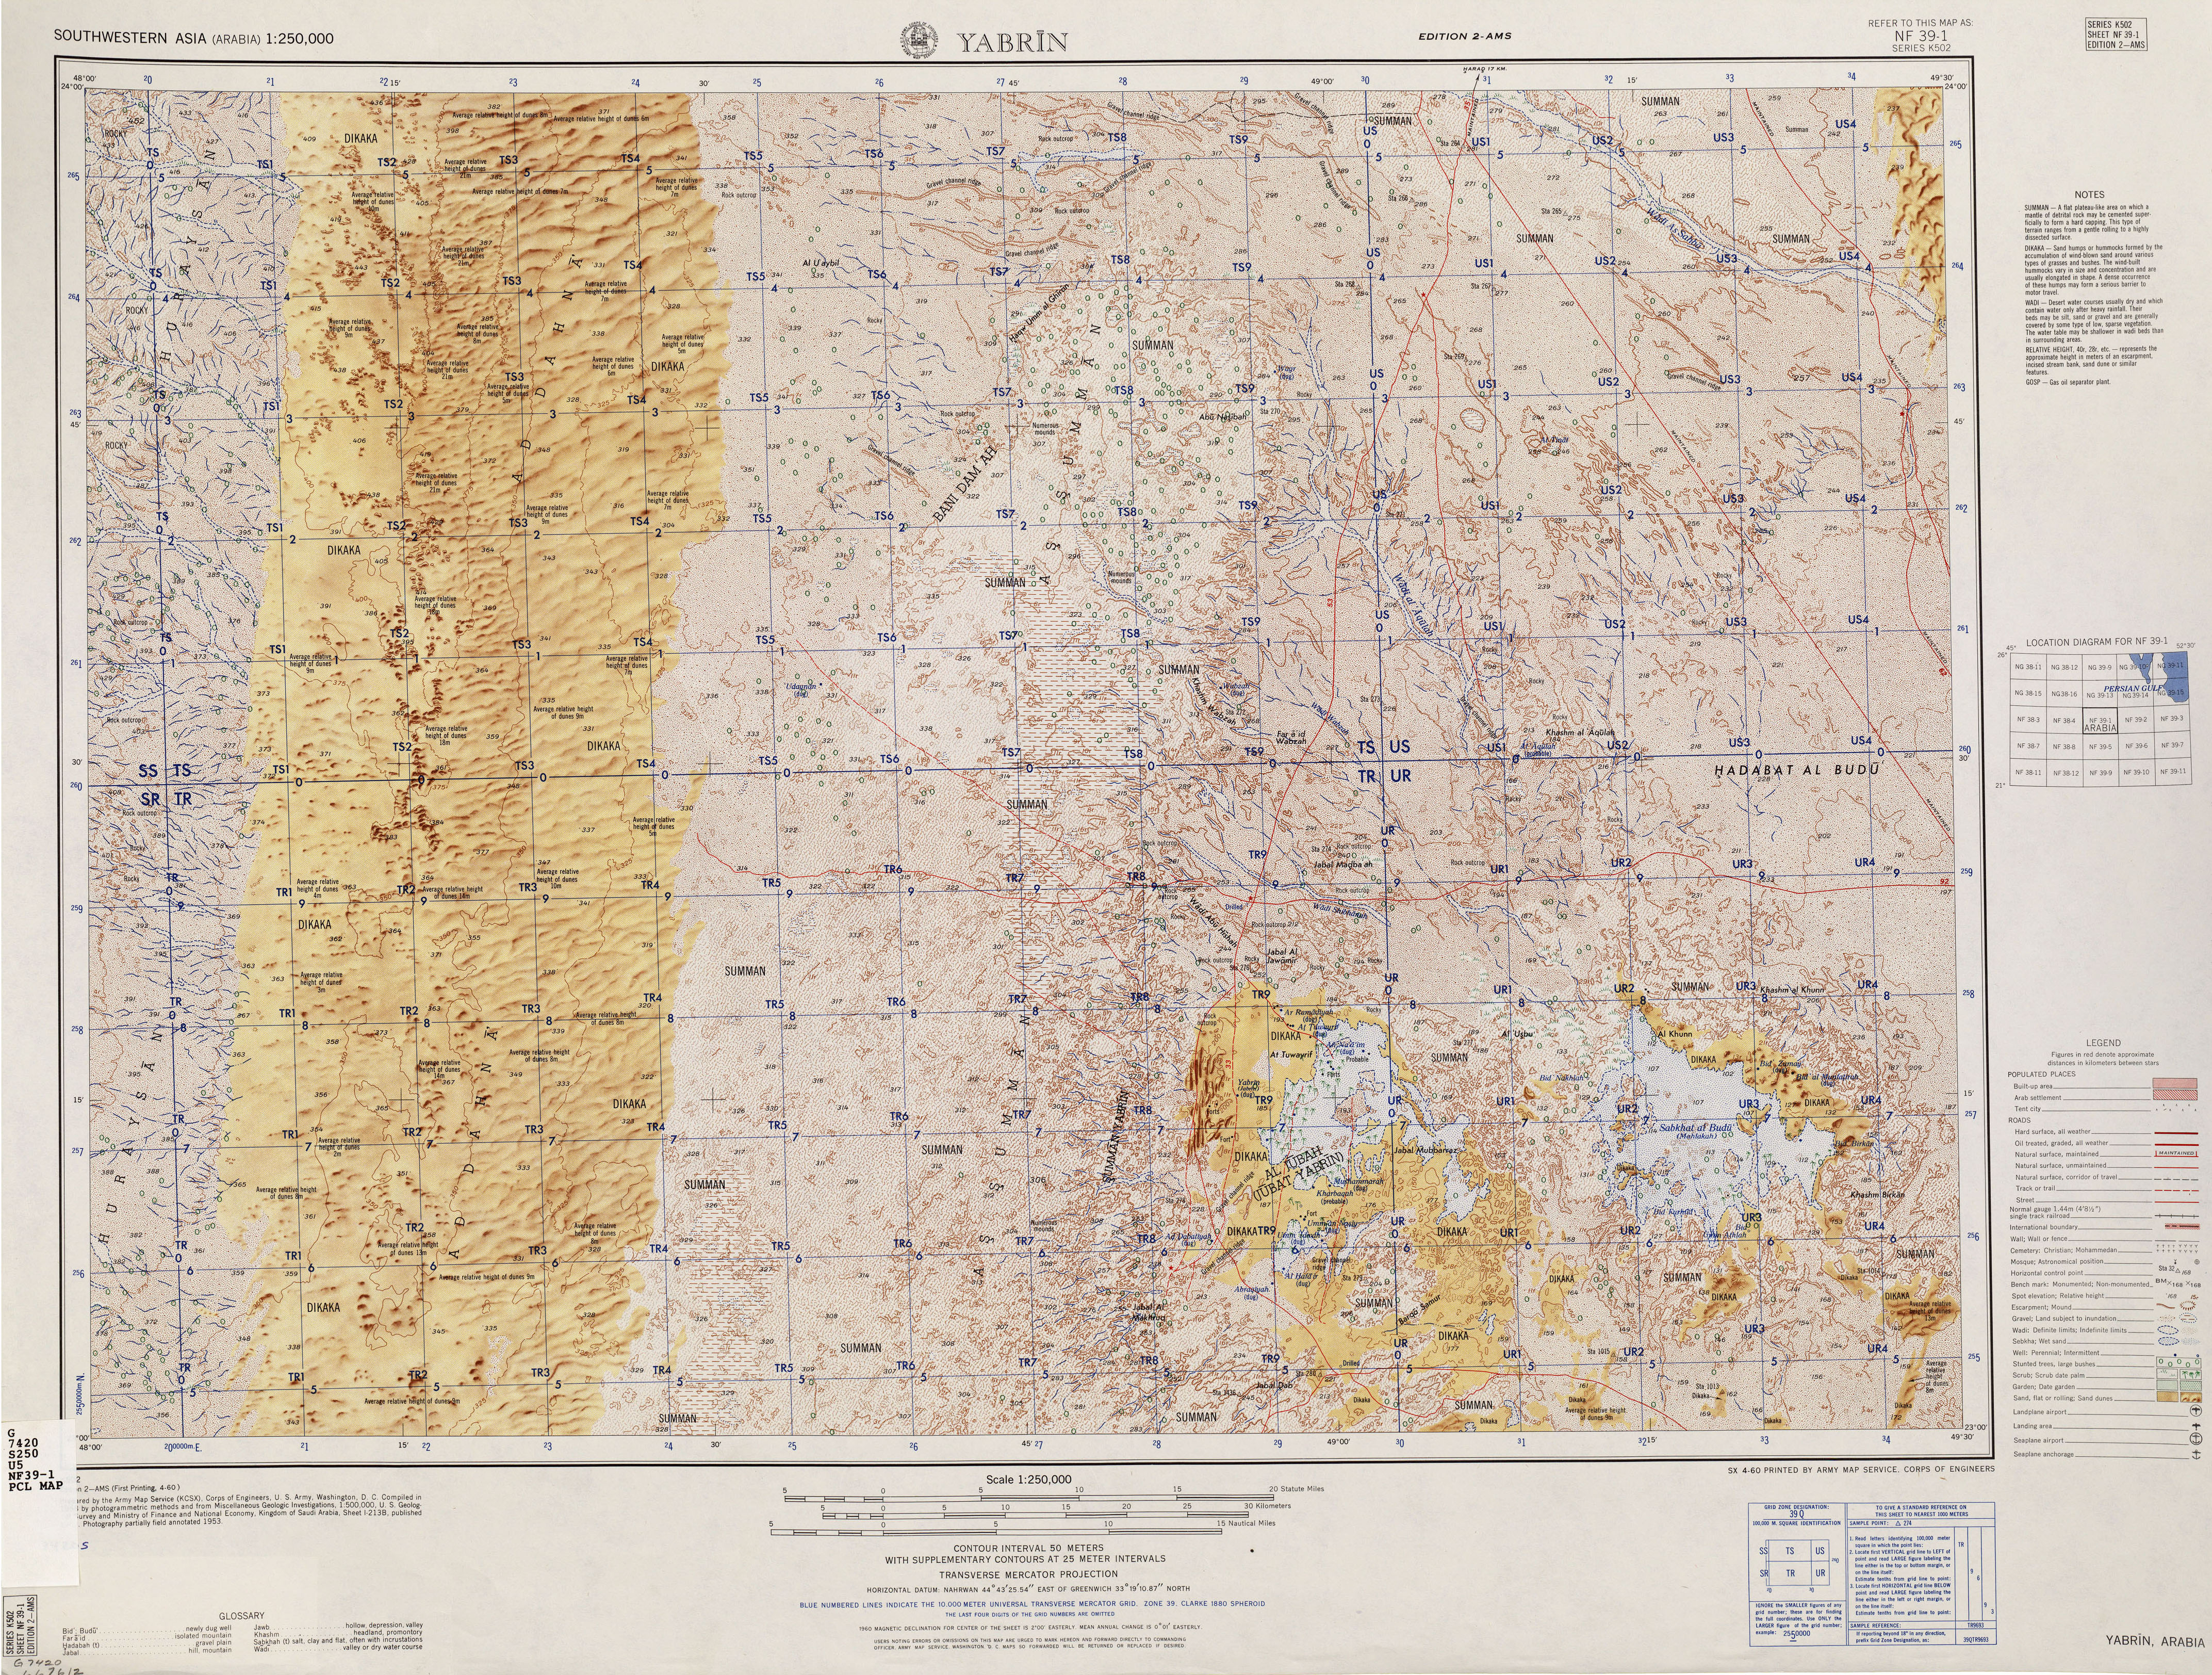 Southwestern Asia AMS Topographic Maps - Perry-Castañeda Map ... on